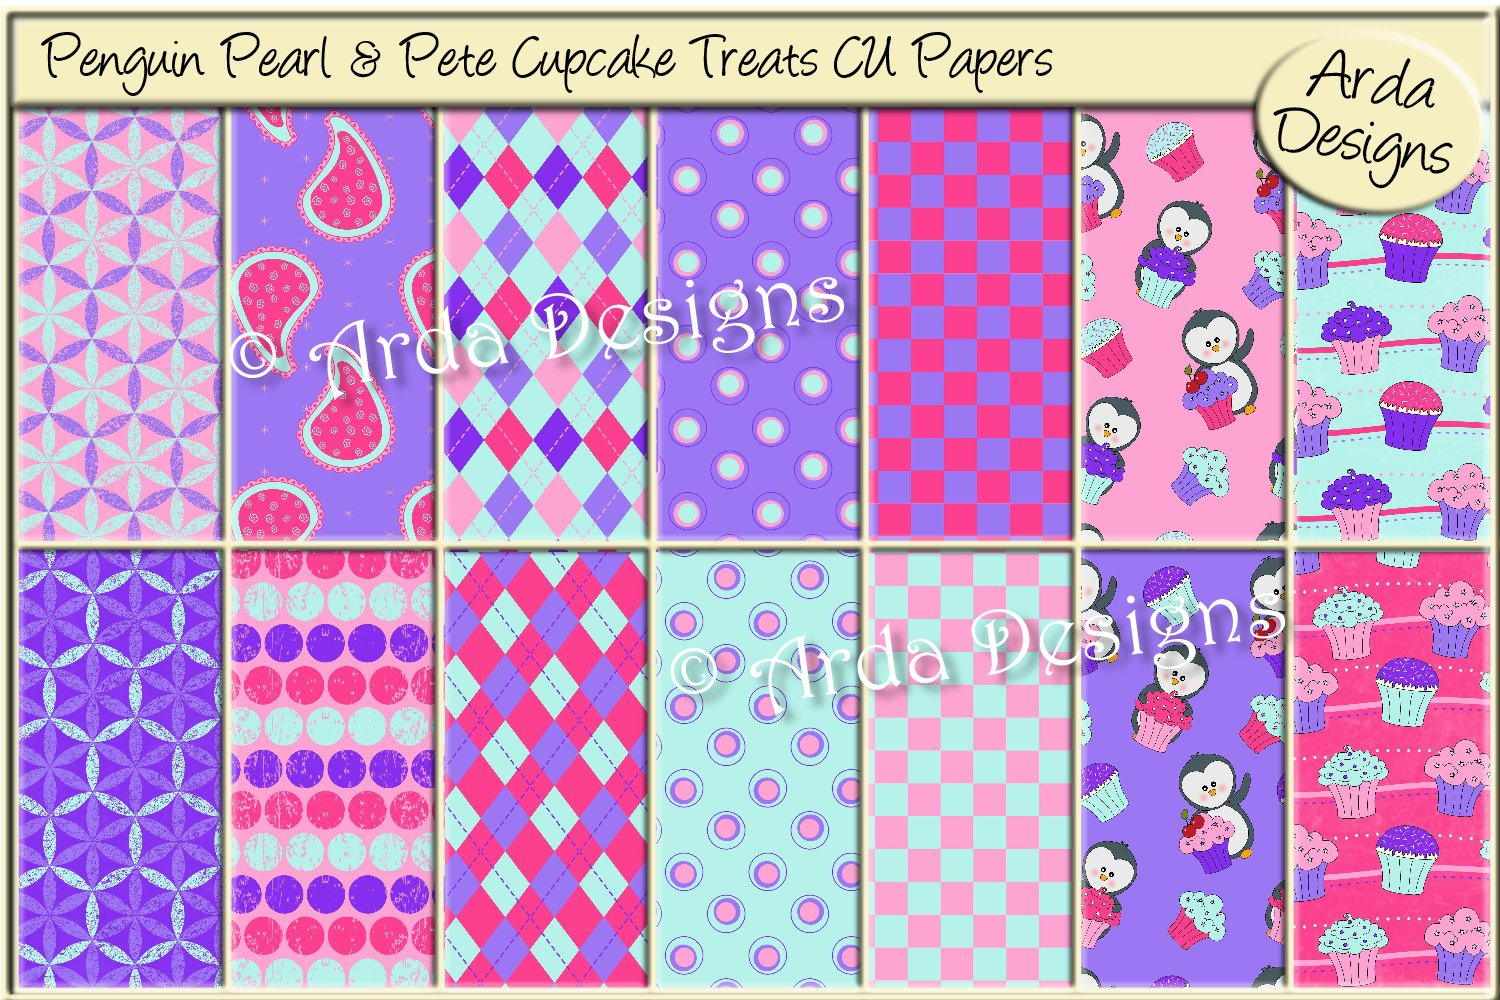 Penguin Pearl & Pete Cupcake Treats CU Papers